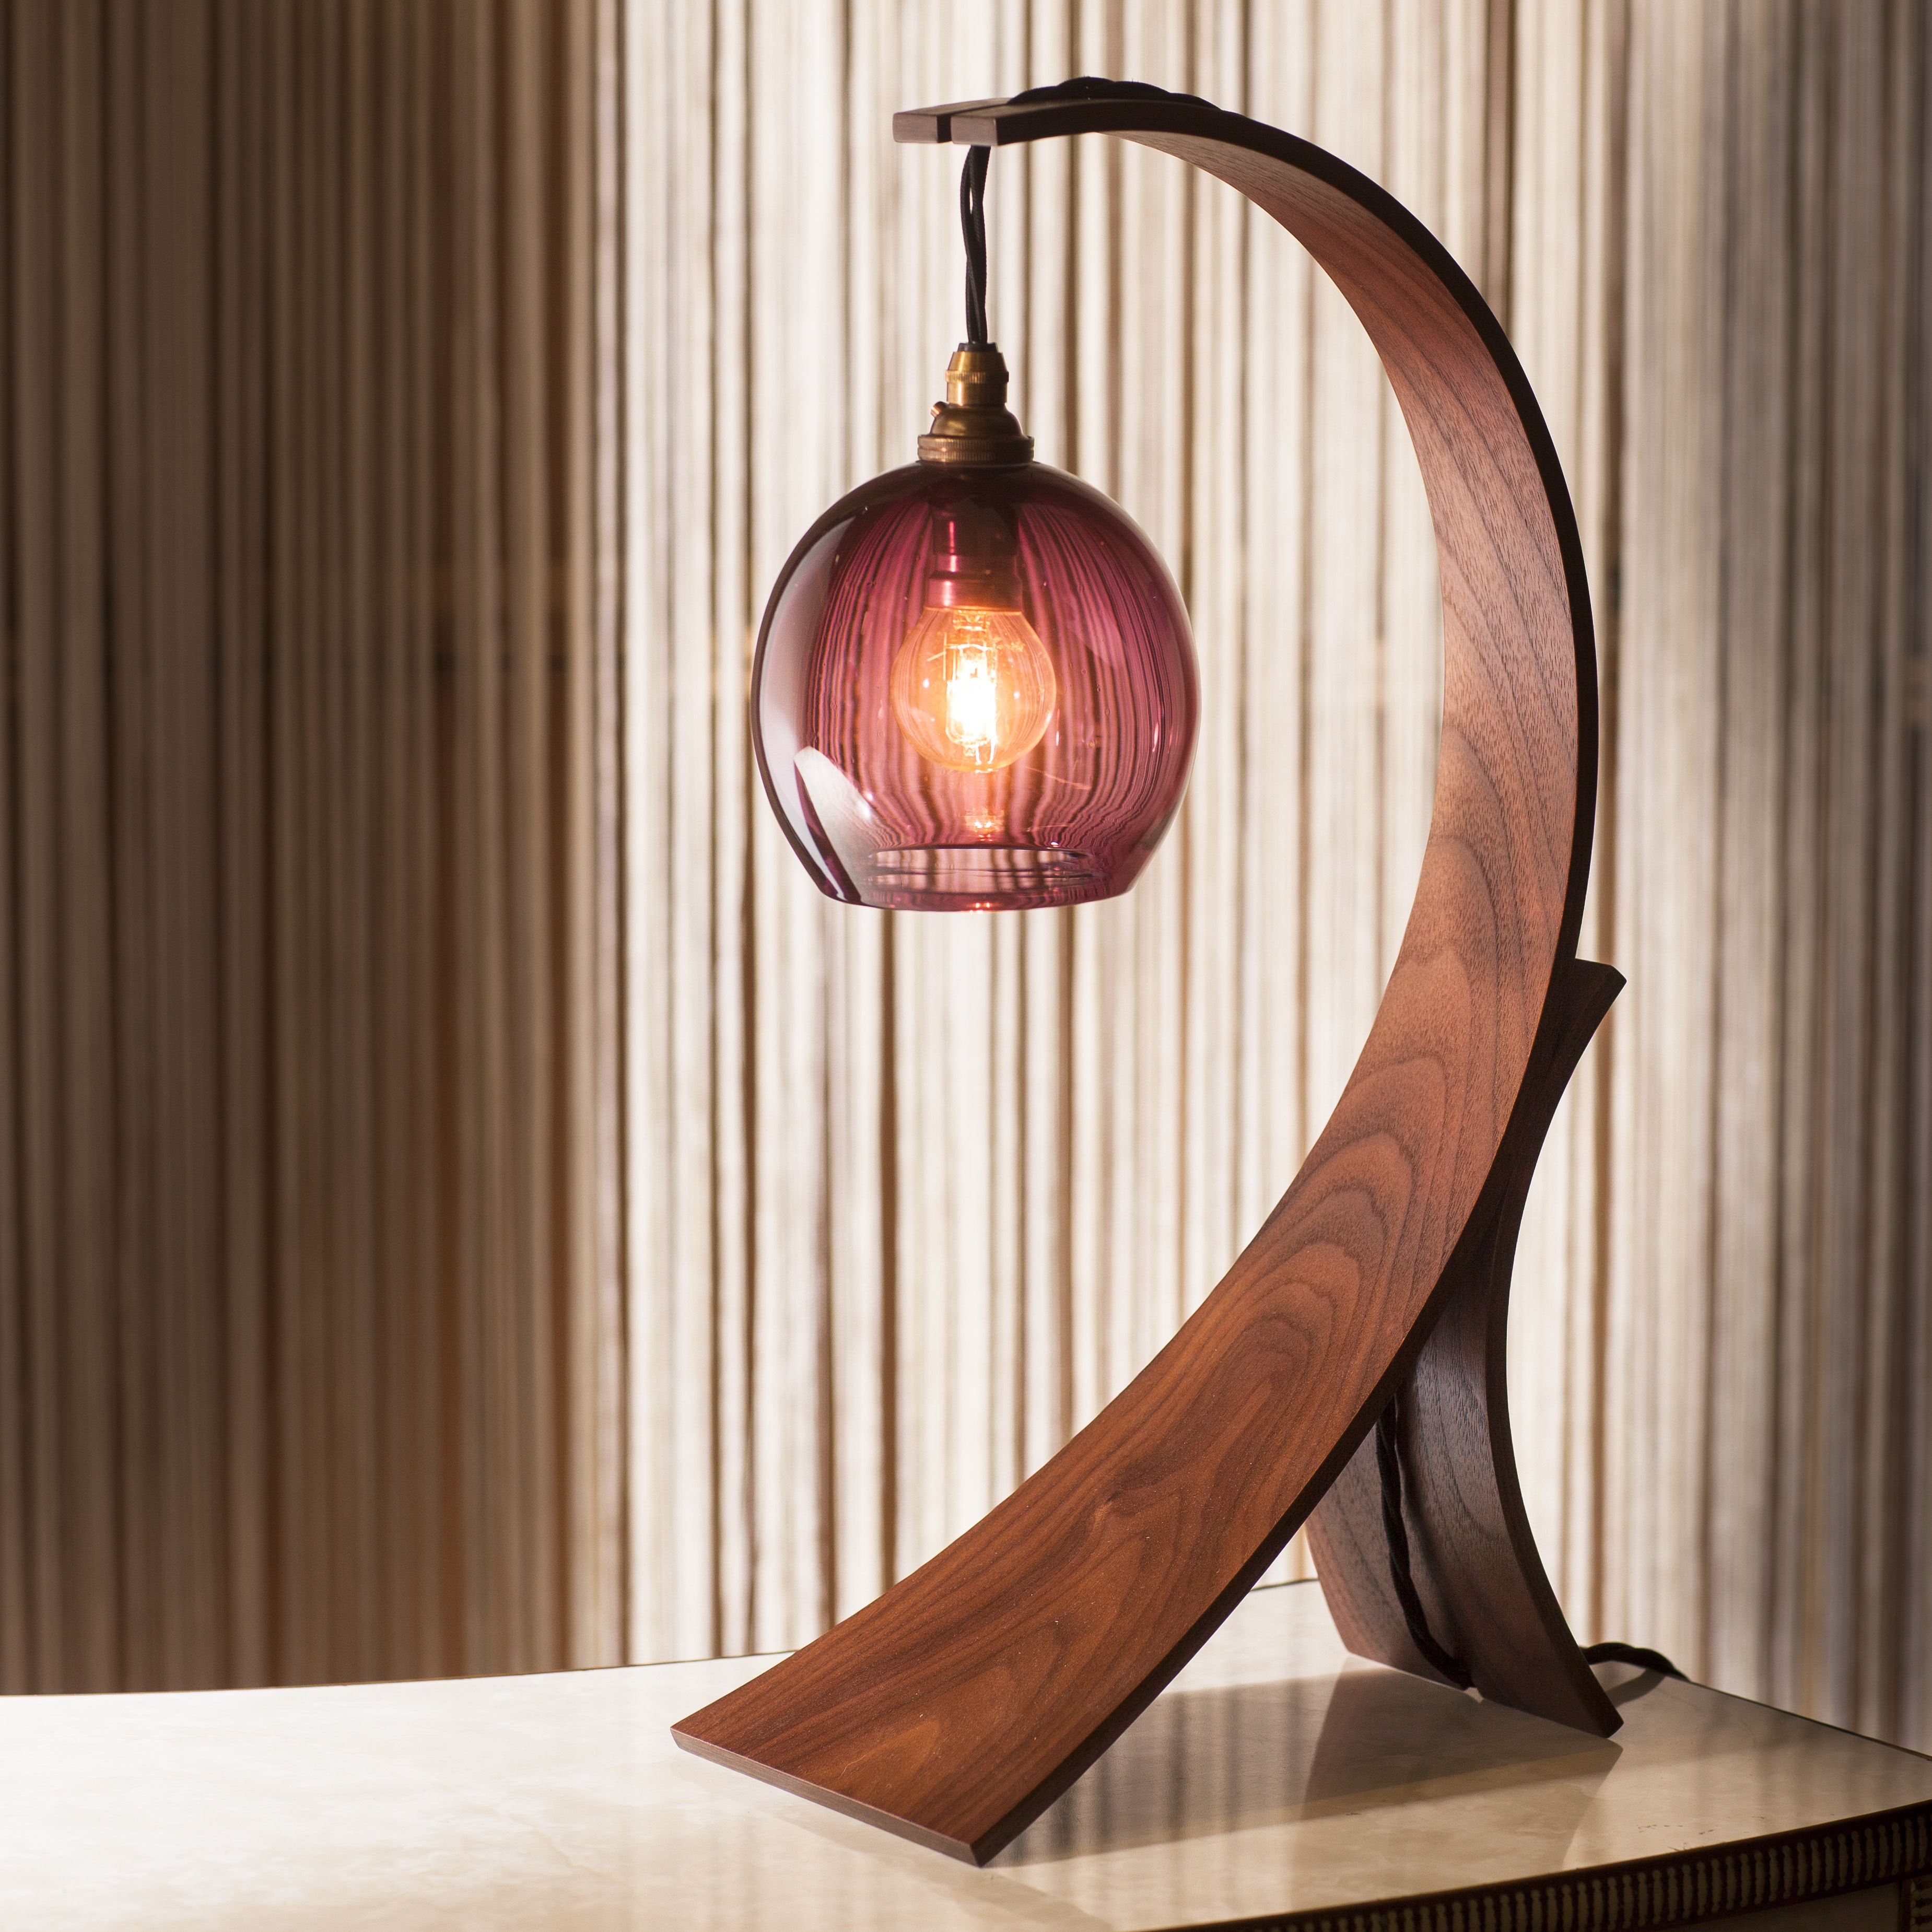 Contemporary Walnut Crescent Table Lamp With Hand Blow Pendant Table Lamp Wood Table Lamp Design Wooden Light